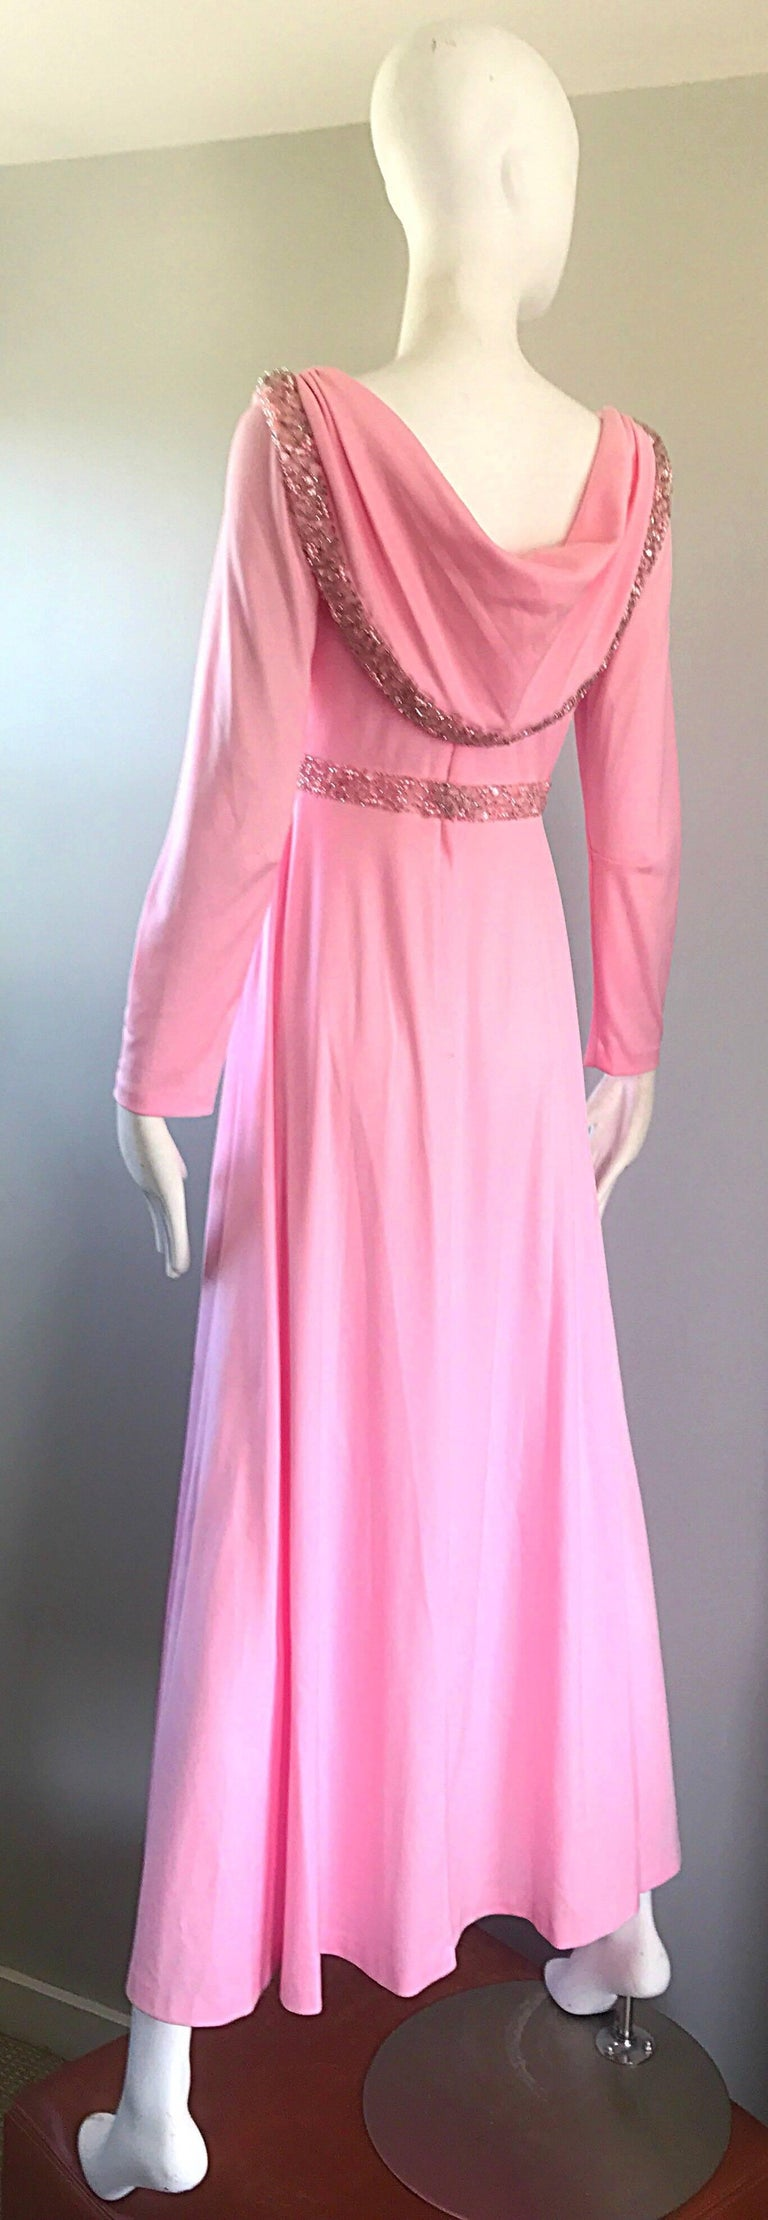 Amazing 1970s Light Pink Grecian Sequined and Beaded Long Sleeve Maxi Dress Gown For Sale 3